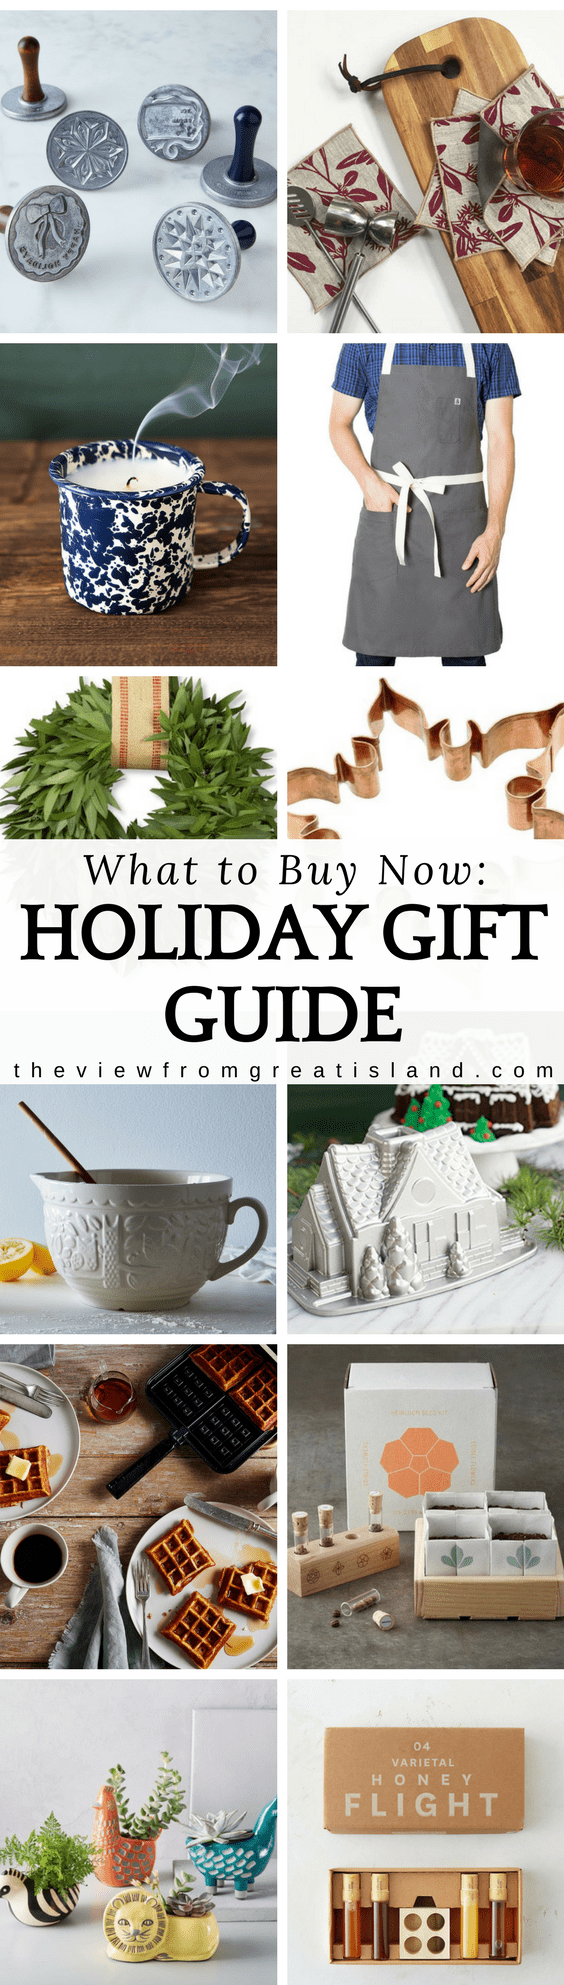 The View from Great Island Gift Guide for all the foodies on your list! #food #gifts #kitchen #kitchengifts #foodgifts #holidaygifts #giftguide #giftsforfoodies #Christmasgiftguide